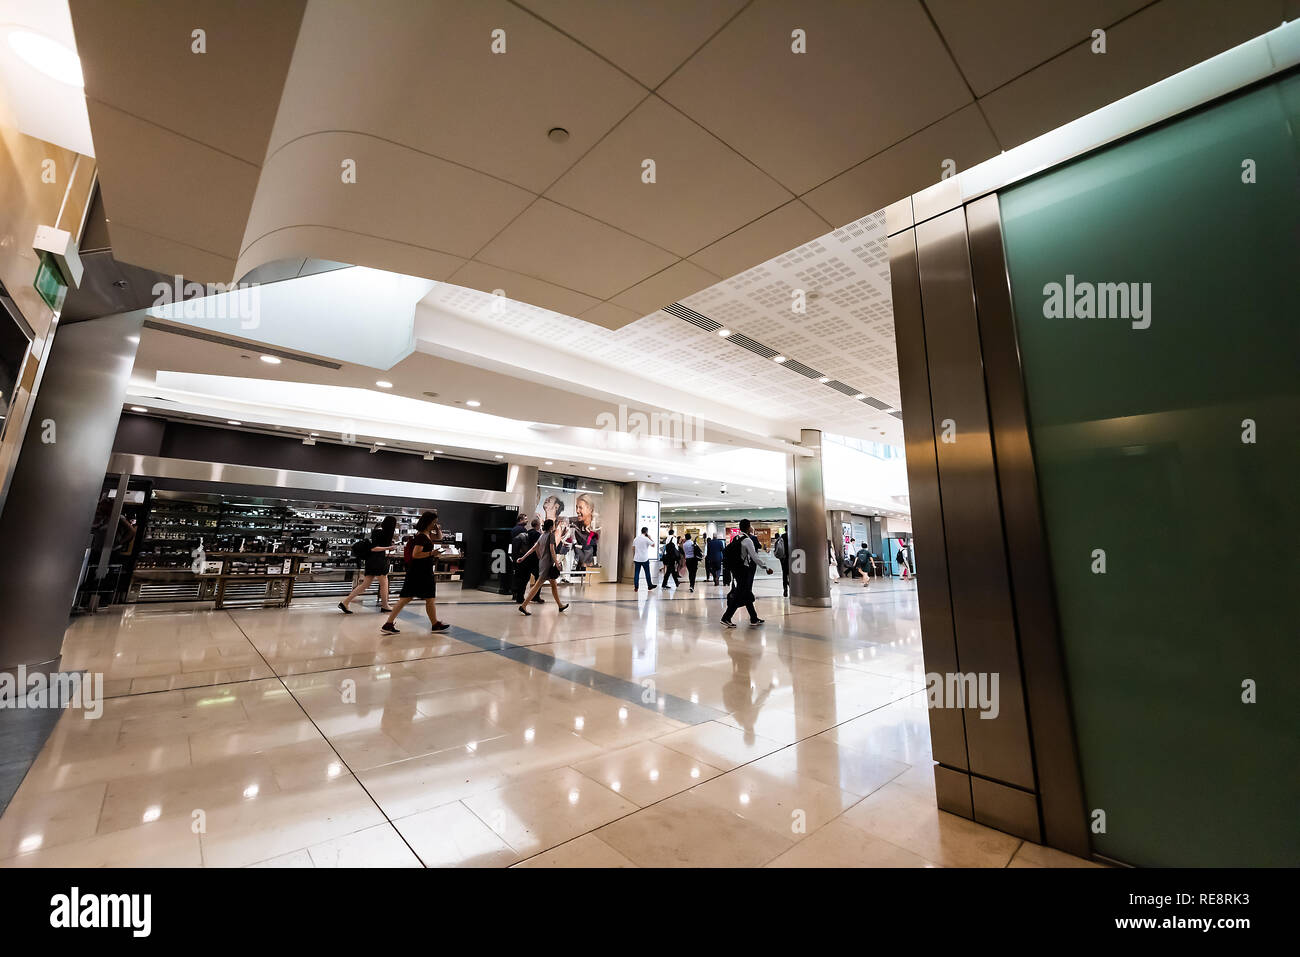 London, UK - June 26, 2018: Interior of modern shopping centre building in financial district in Canary Wharf Docklands architecture and people walkin - Stock Image